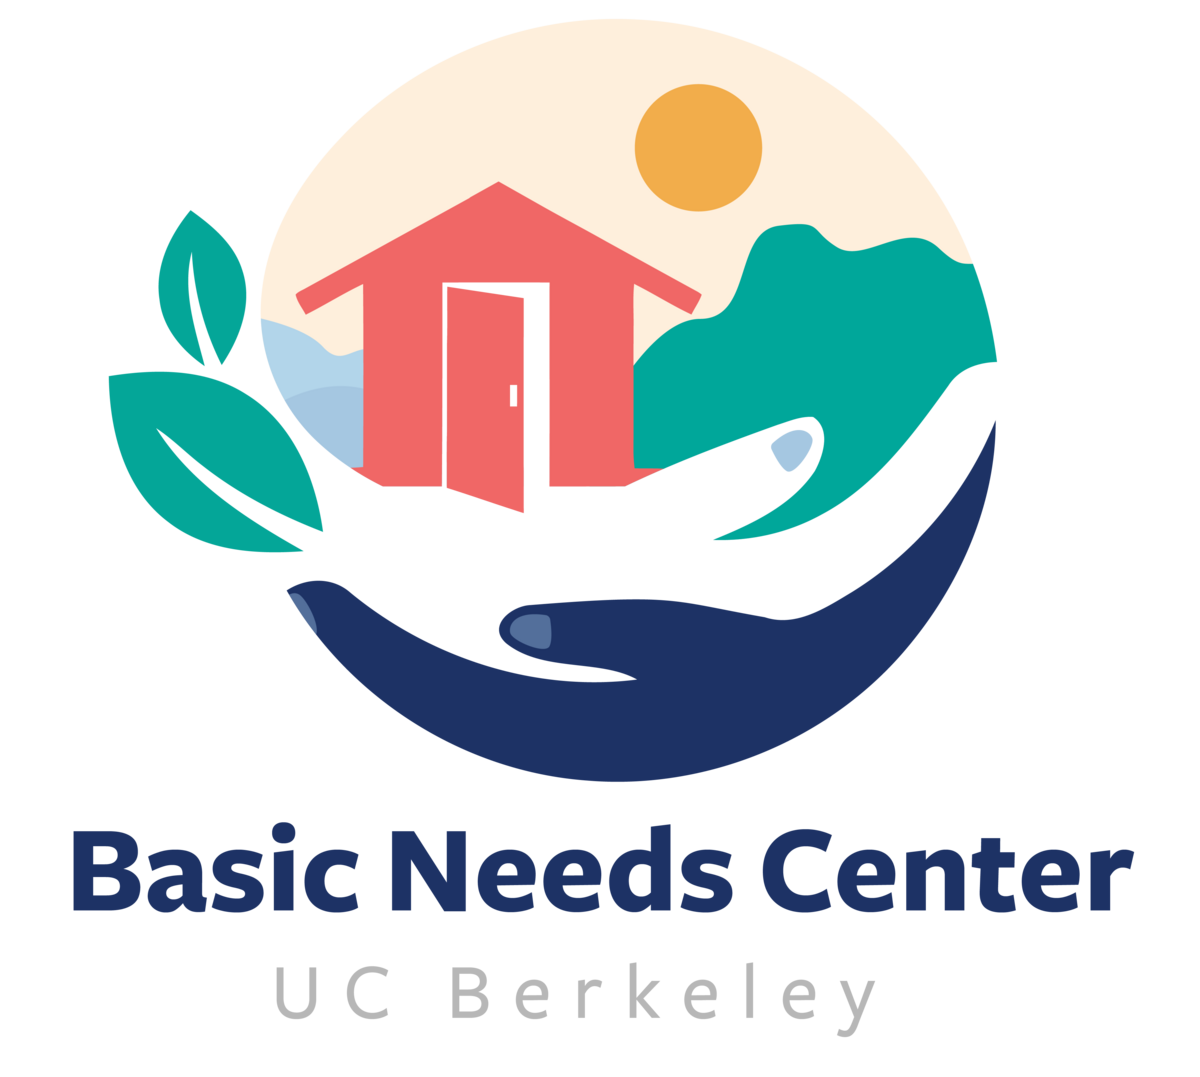 BNC logo of a house held by hands